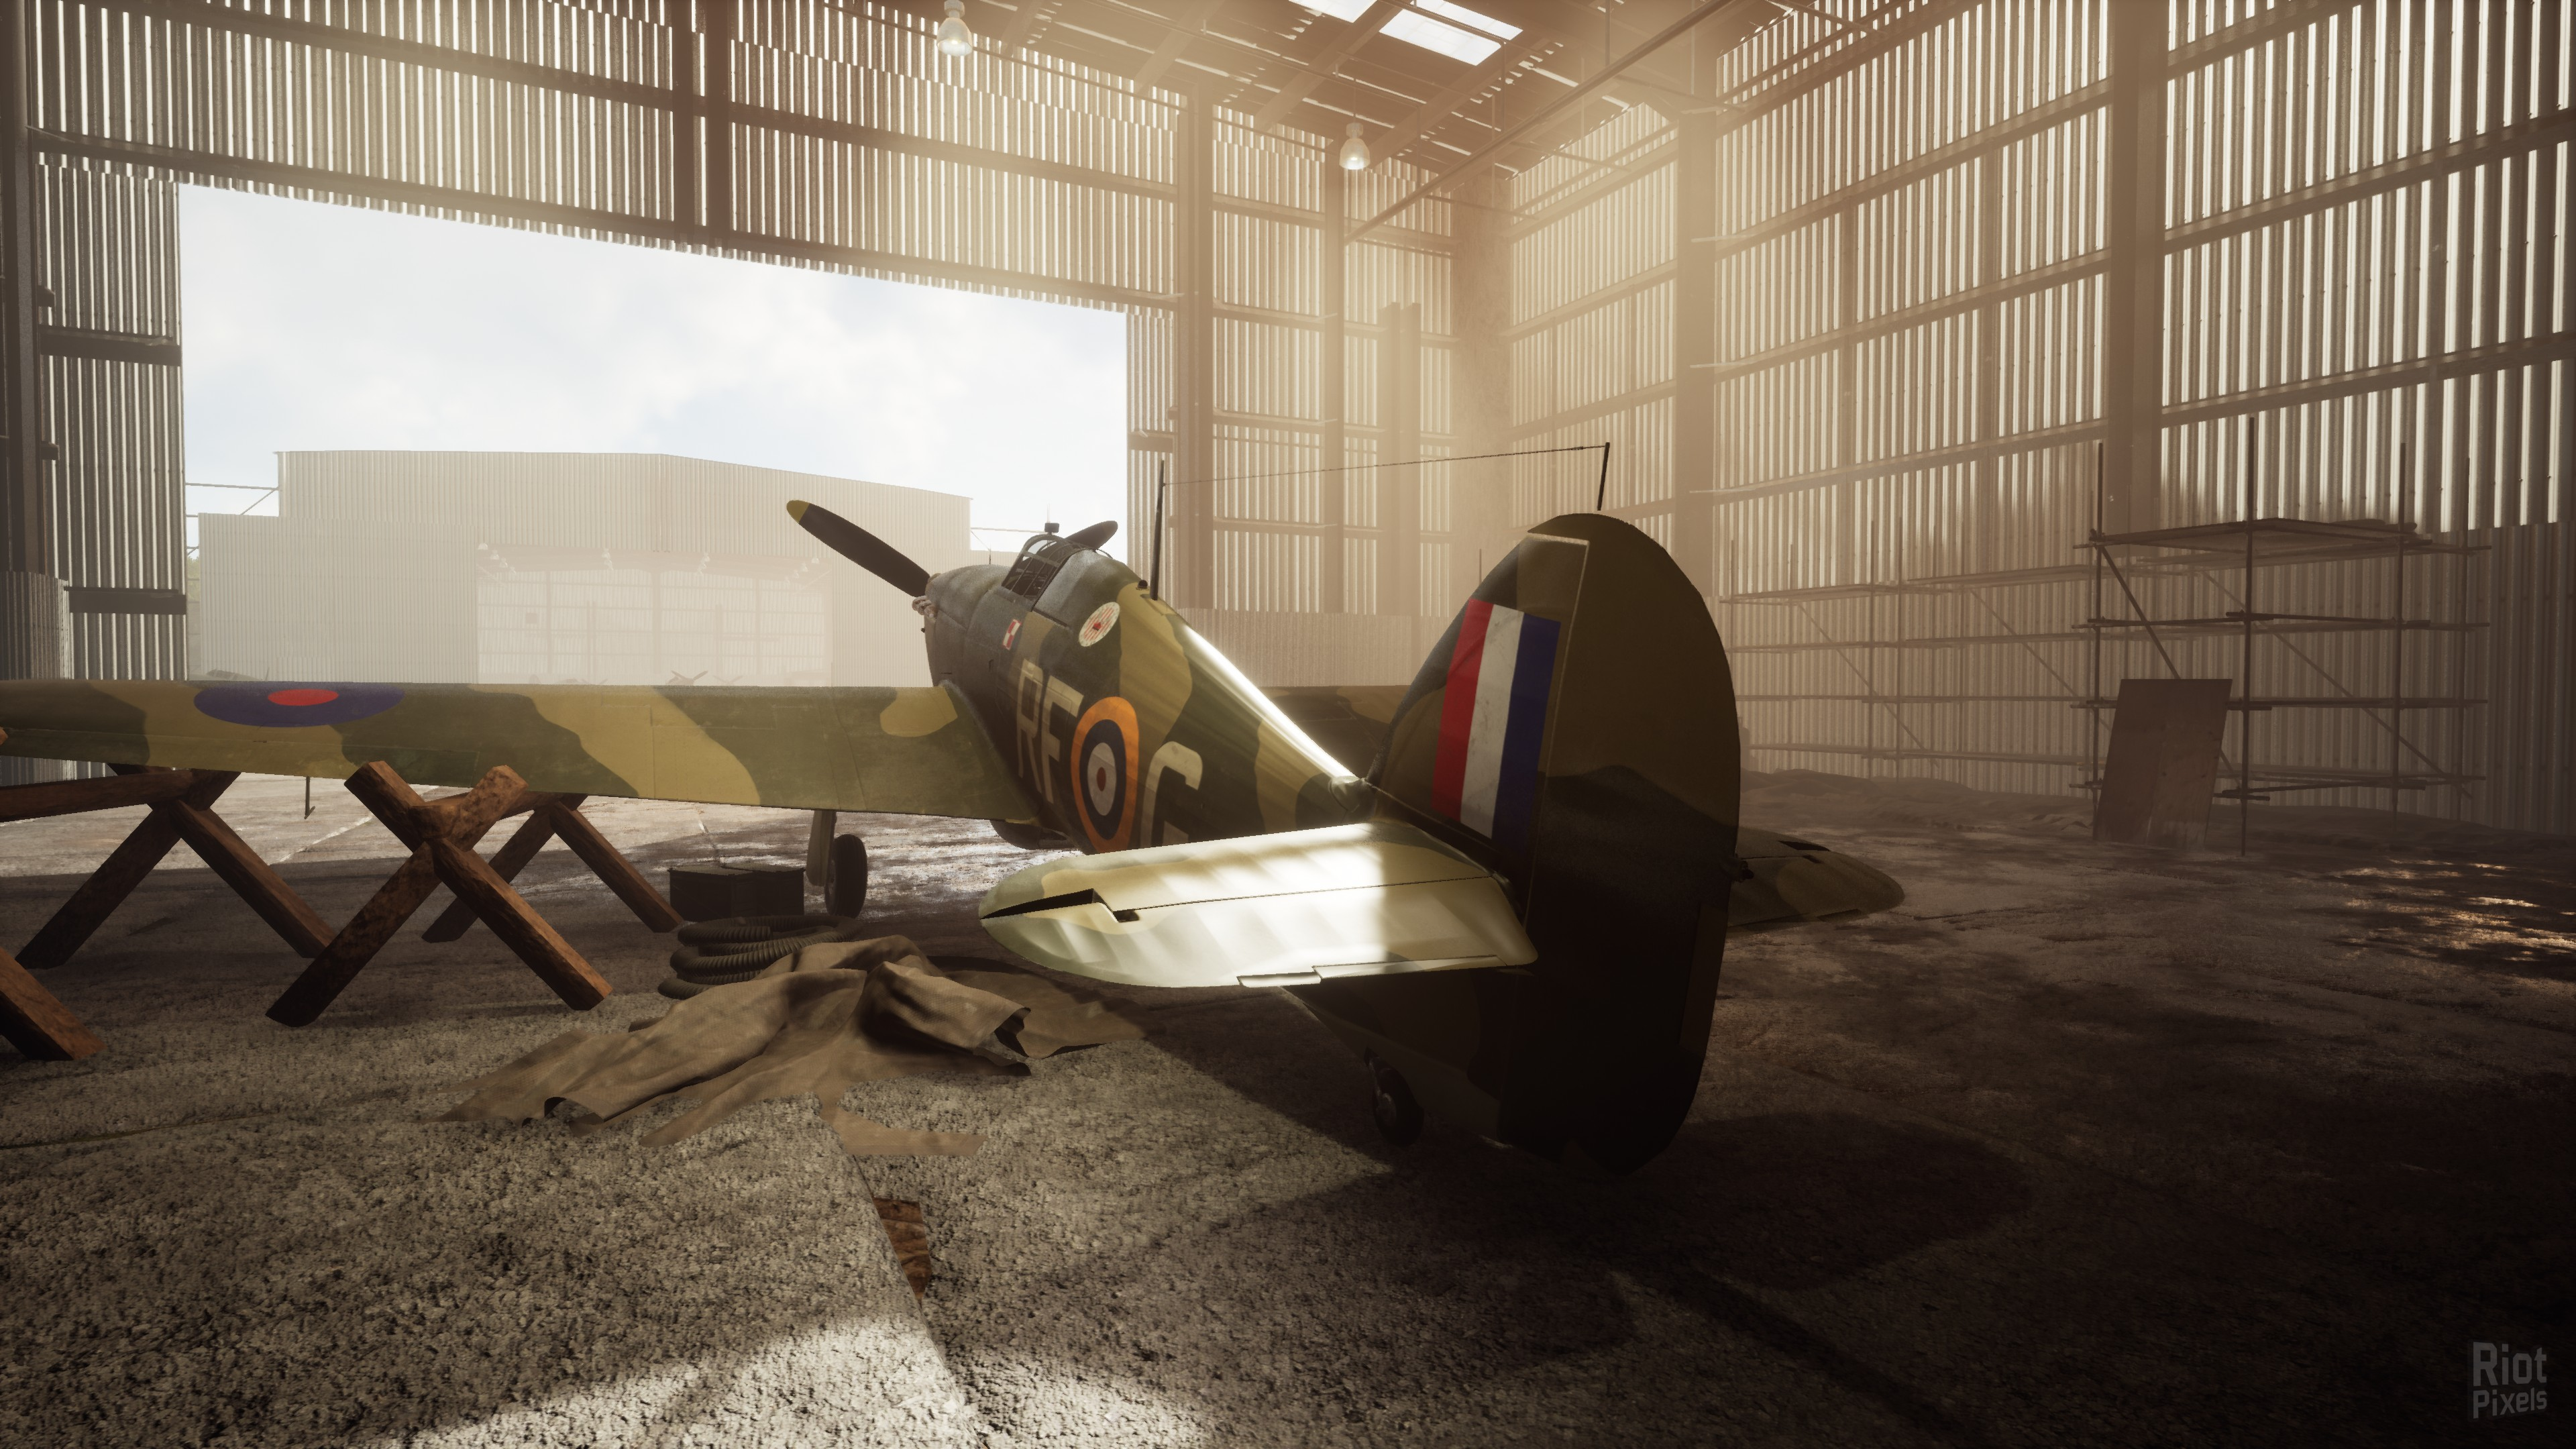 303 Squadron: Battle of Britain - game screenshots at Riot Pixels